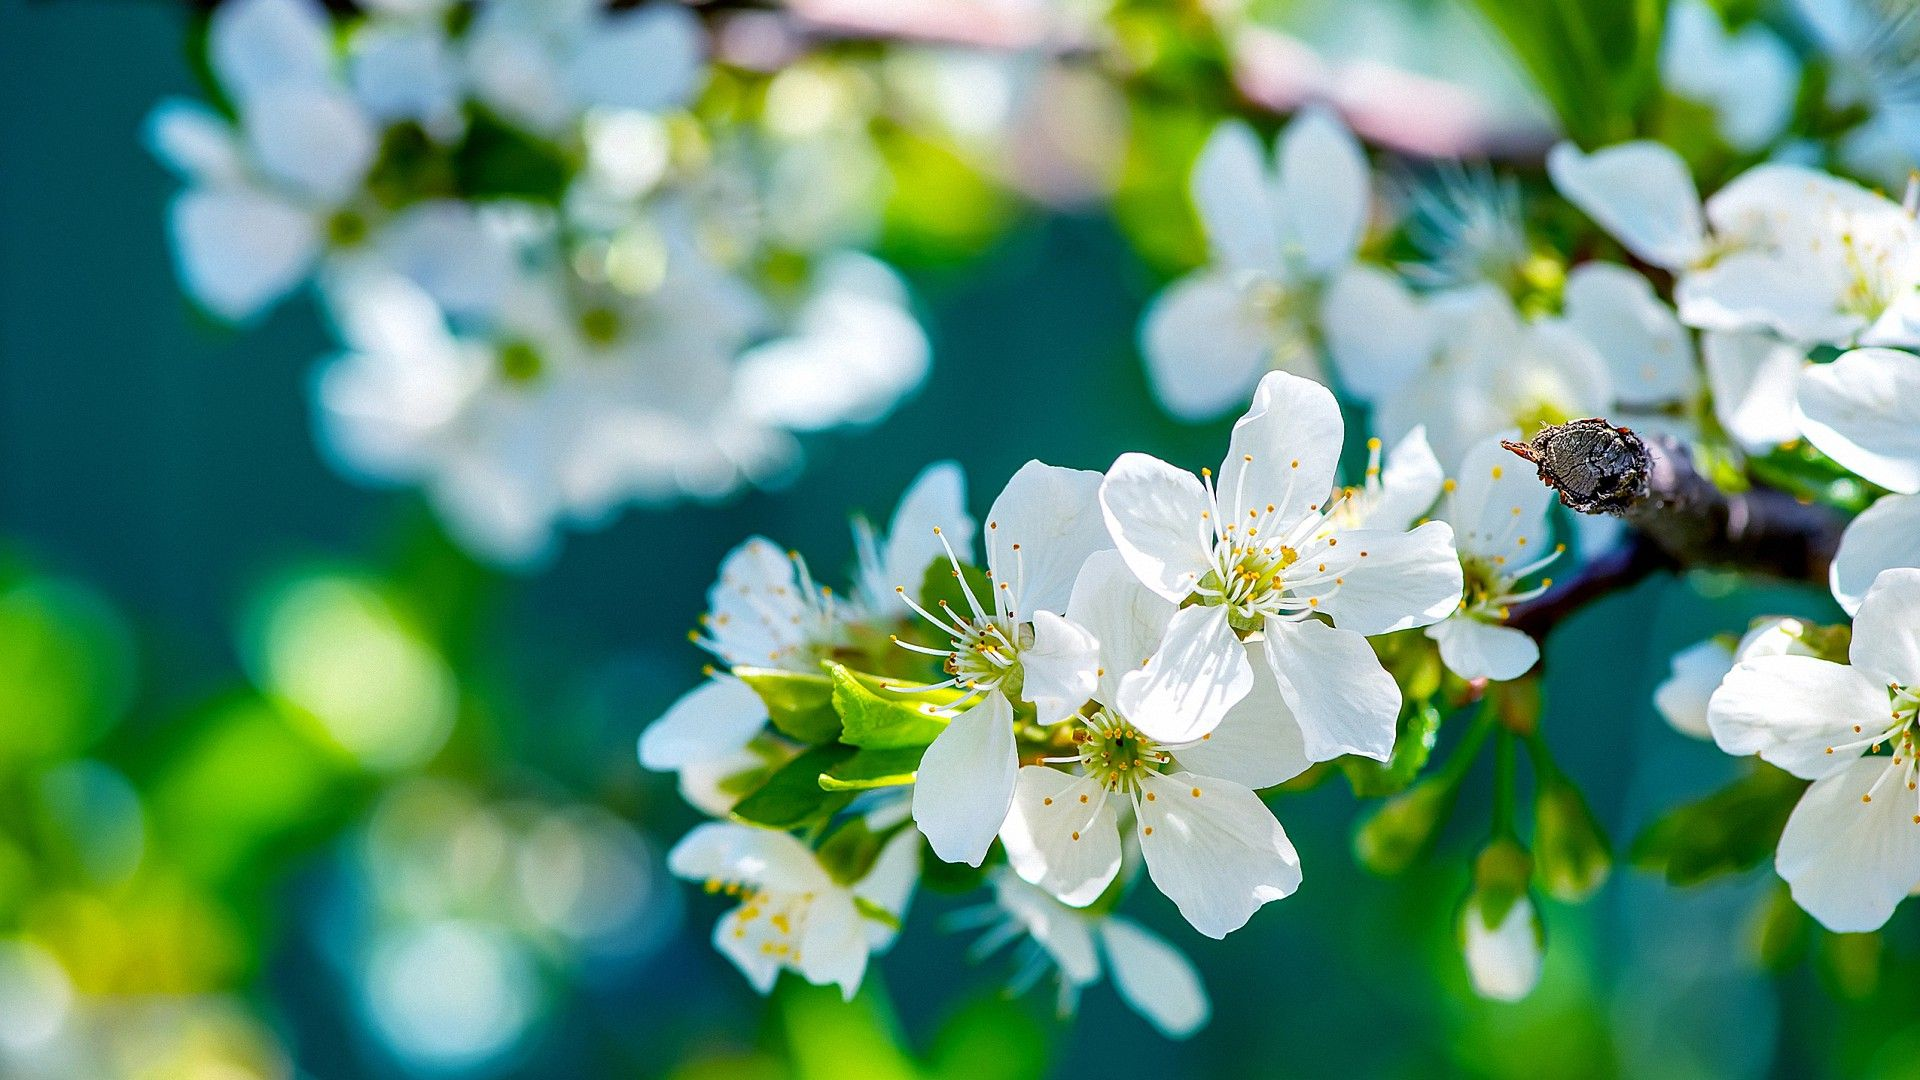 Blooming Nature Blossom Hd Wallpapers Apple Flowers Hd Flower Wallpaper Flower Wallpaper